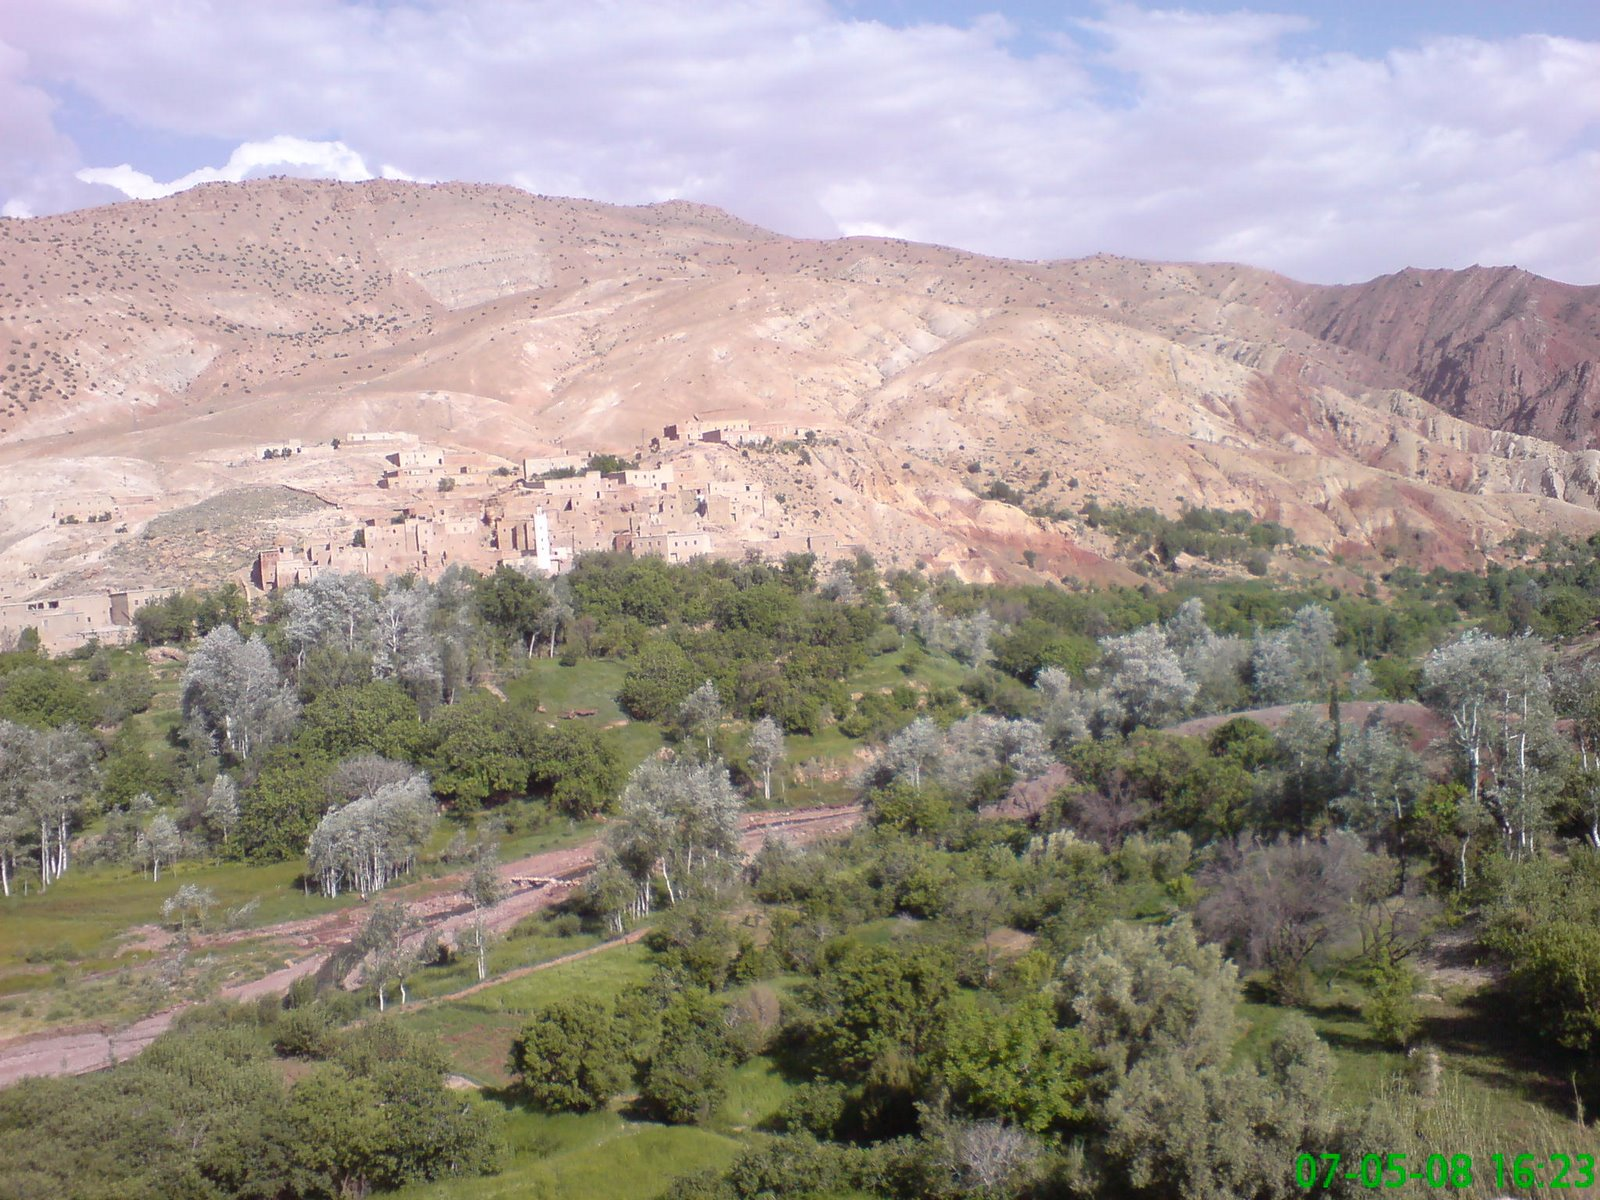 View from gite at Tighza in the High Atlas